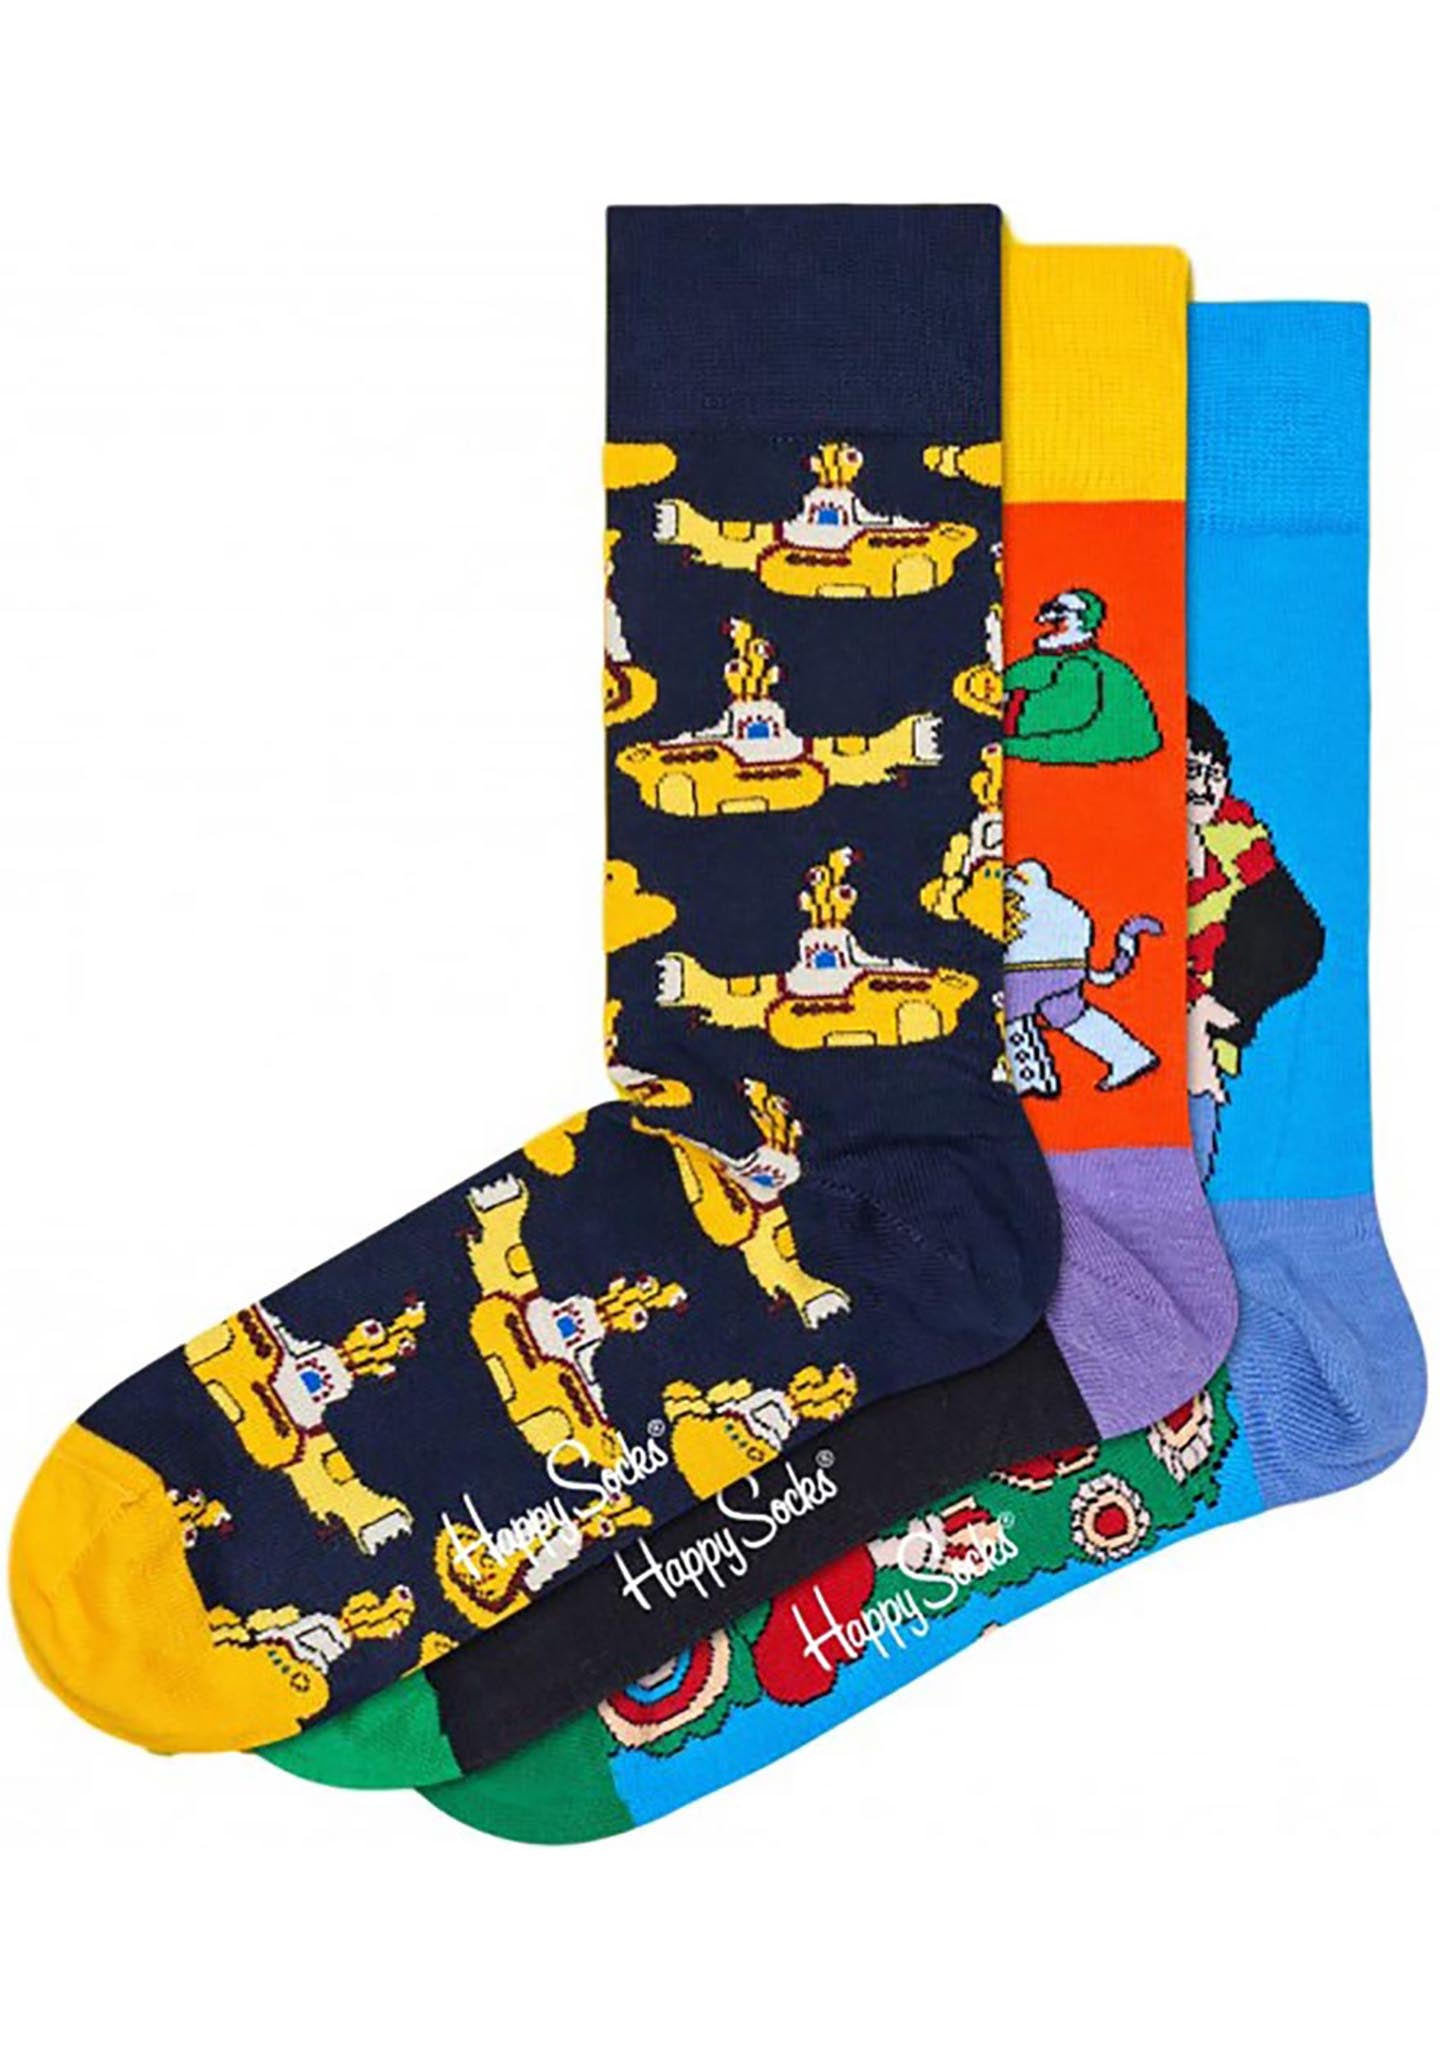 Happy Socks Limited Edition Beatles 3pk Gift Set